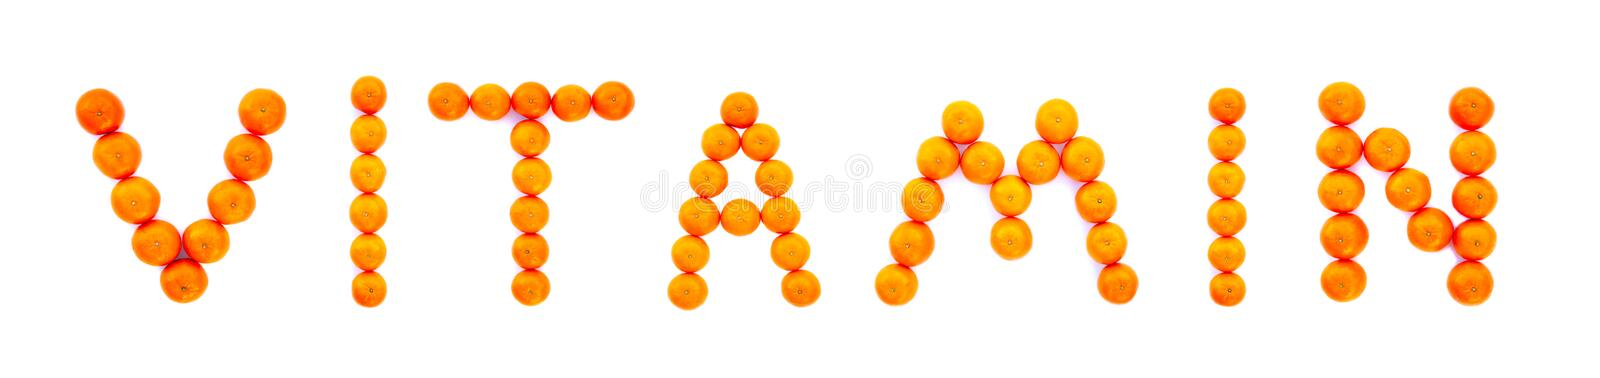 Word Vitamin folded from tangerines isolated on white background royalty free stock photo